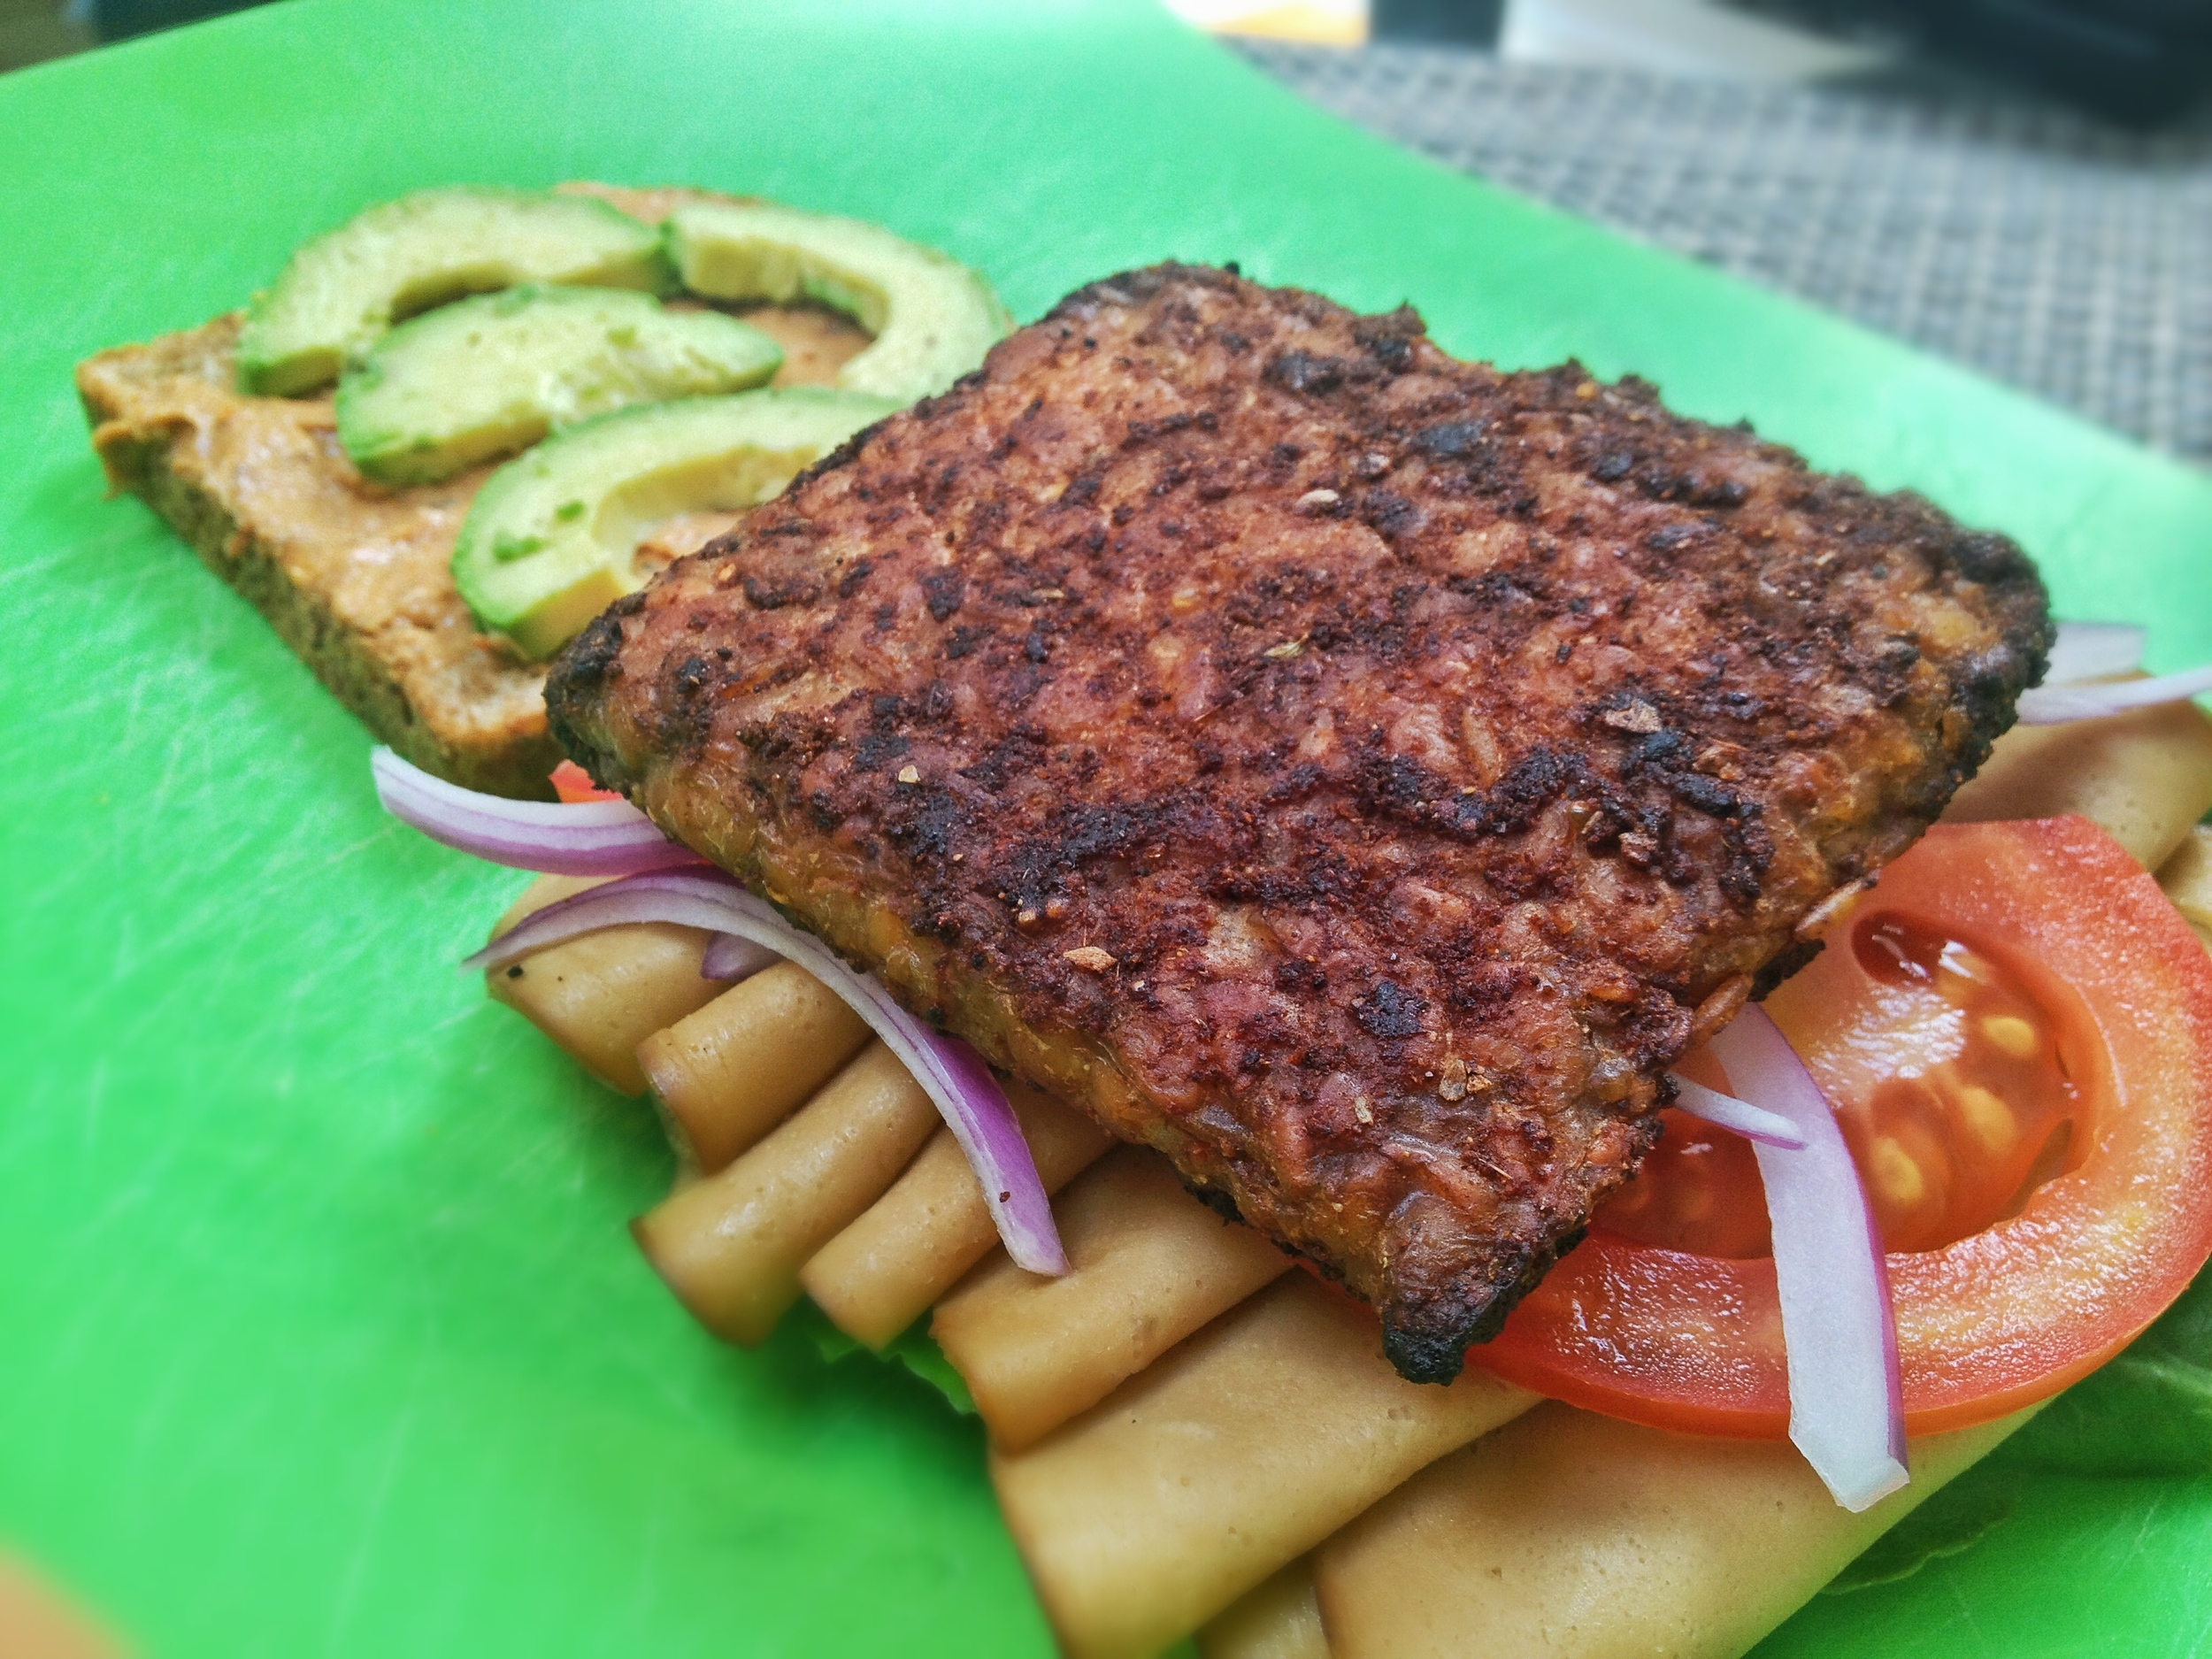 Tofurky Club Sandwich with Blackened Tempeh